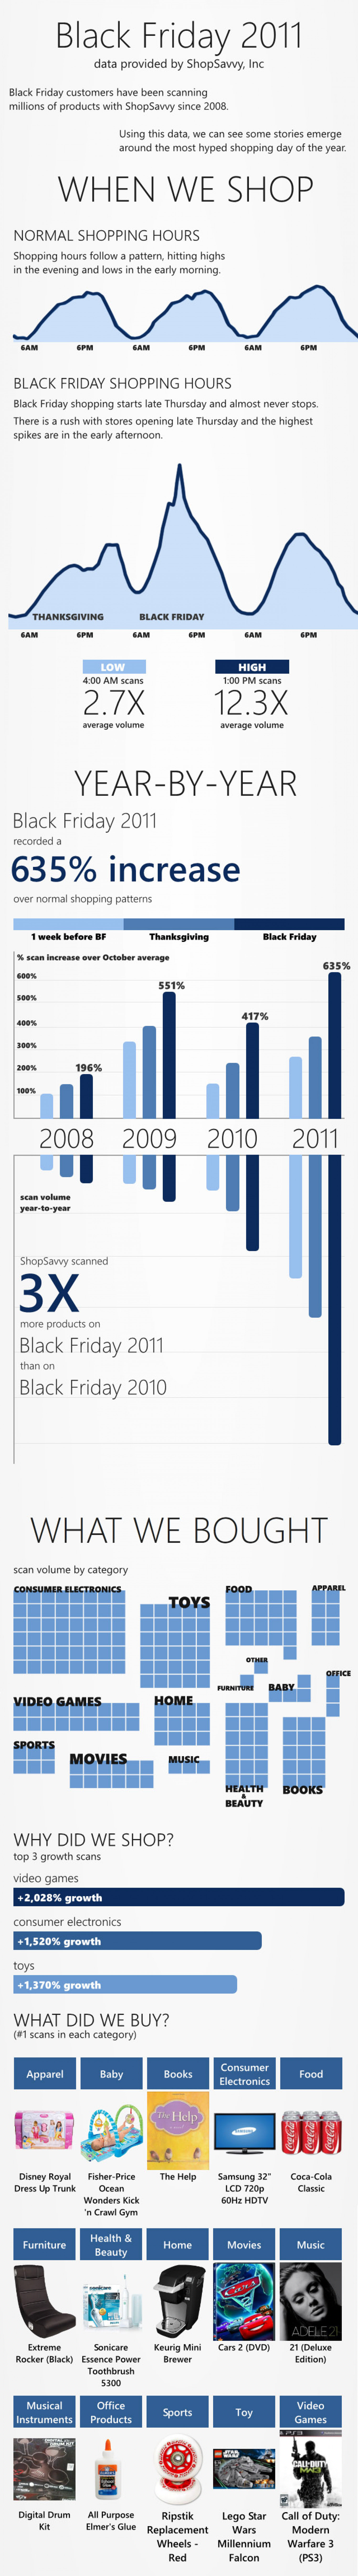 ShopSavvy Wins Black Friday 2011 Infographic